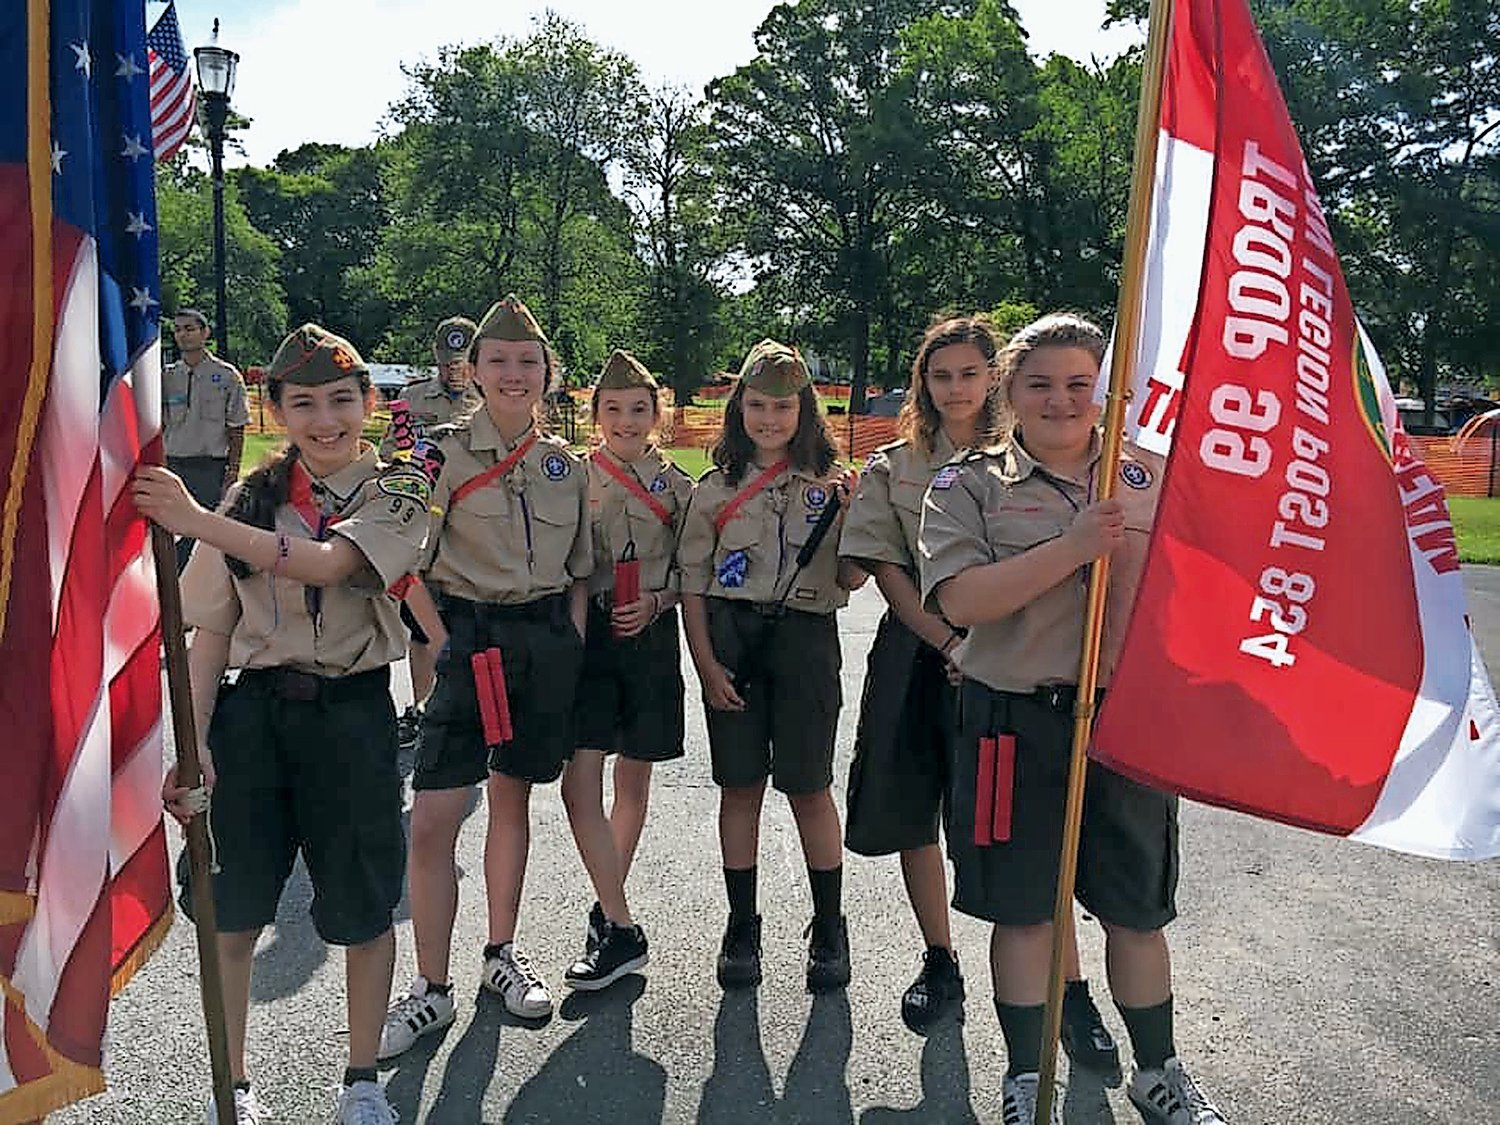 Olivia Donato, far left, Gabriella Burke, Nina Munafo, Rebecca Sult, Madison Kaminsky and Blair Gra-ham at their first village Camporee as members of Scouts BSA Troop 99.